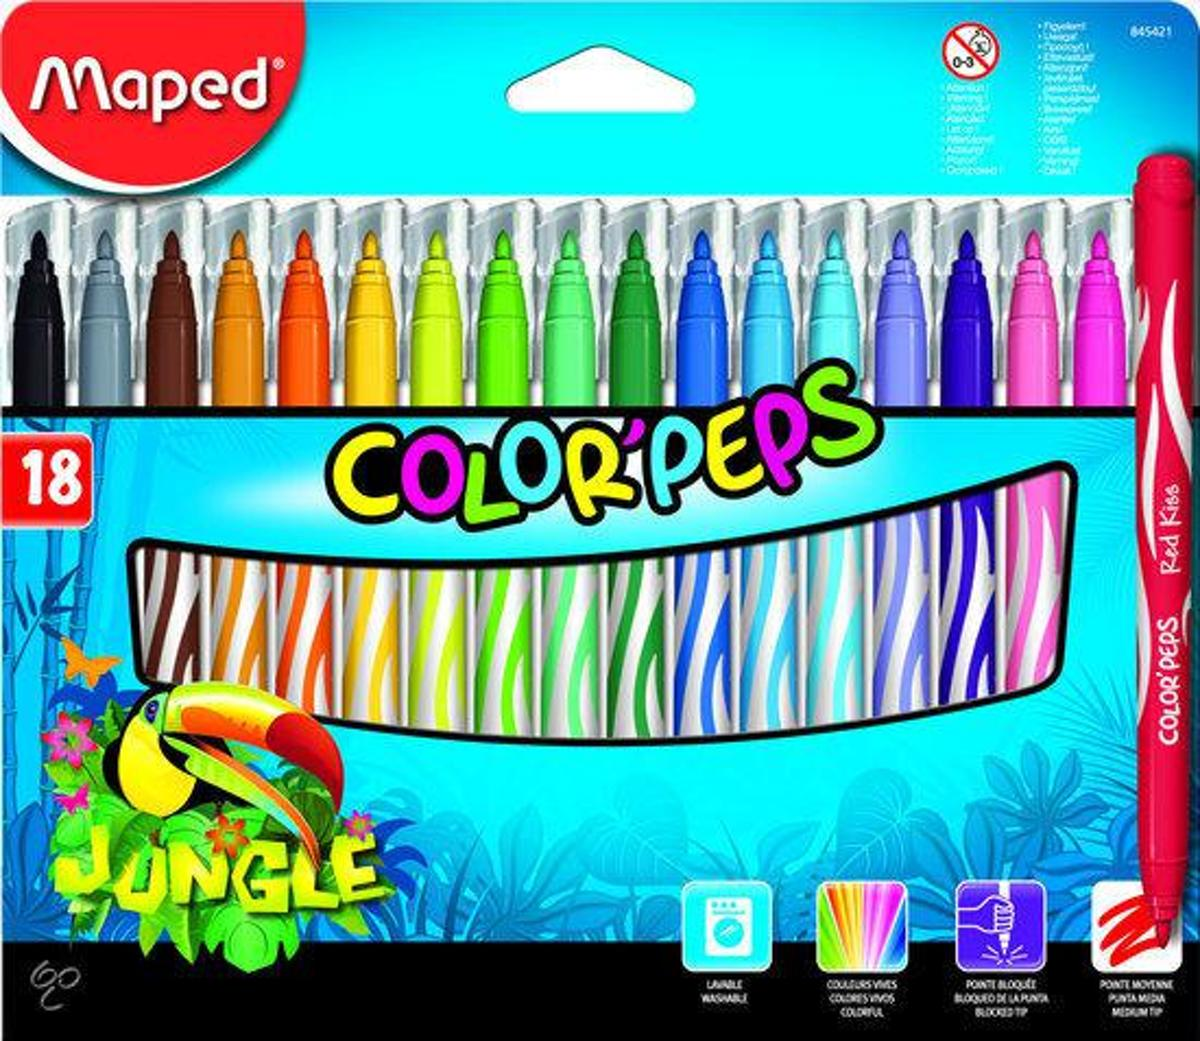 Colorpeps Jungle viltstiften - medium penpunt x 18